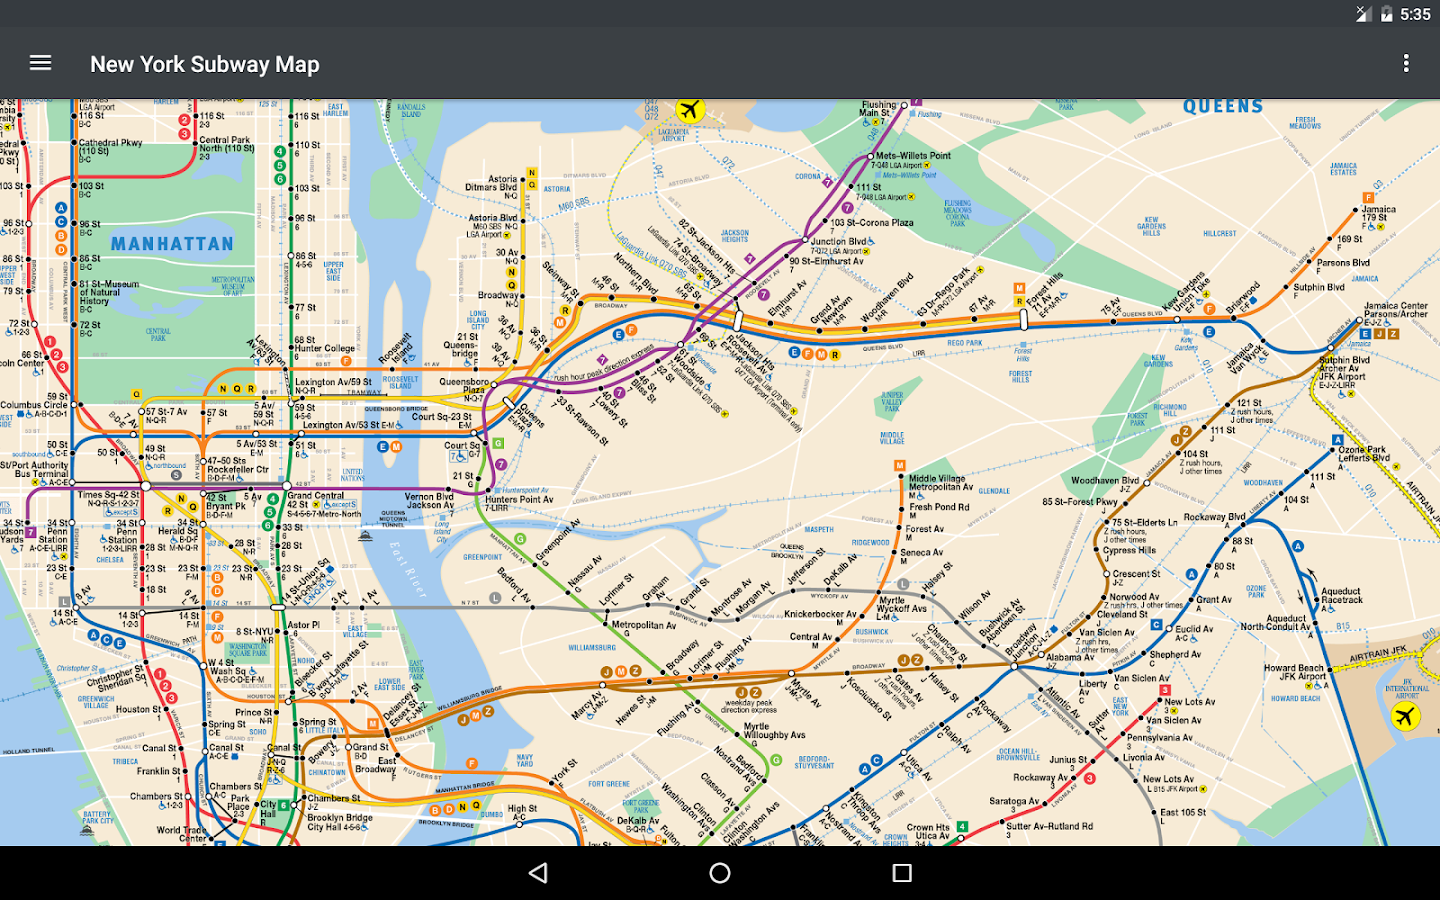 New York Subway Map NYC Android Apps On Google Play - New york subway map new